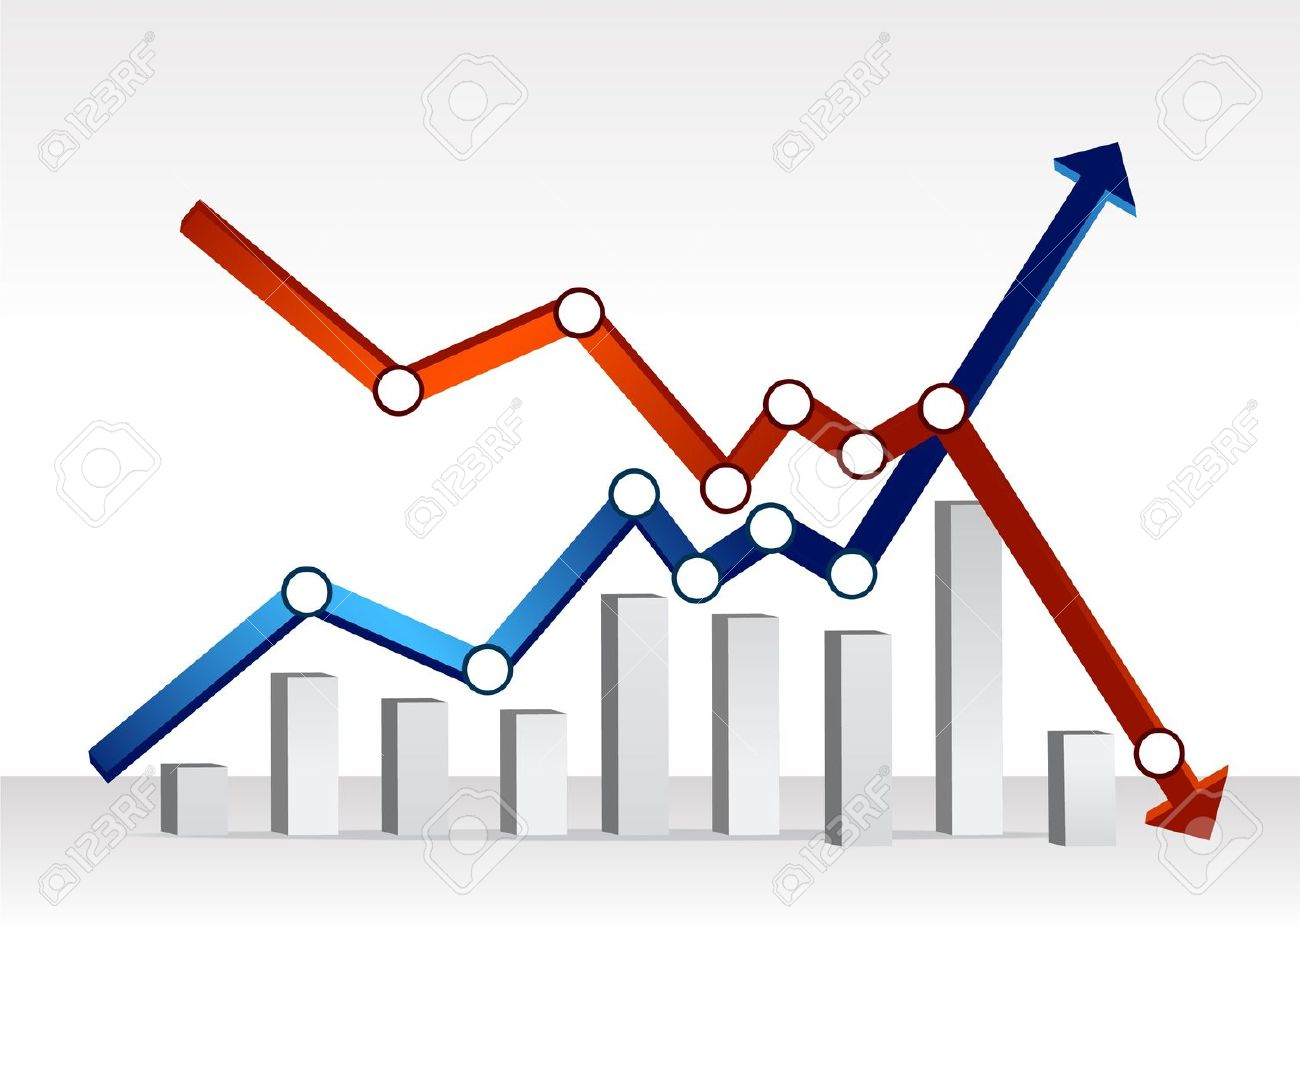 Finance Stock Market Clip Art